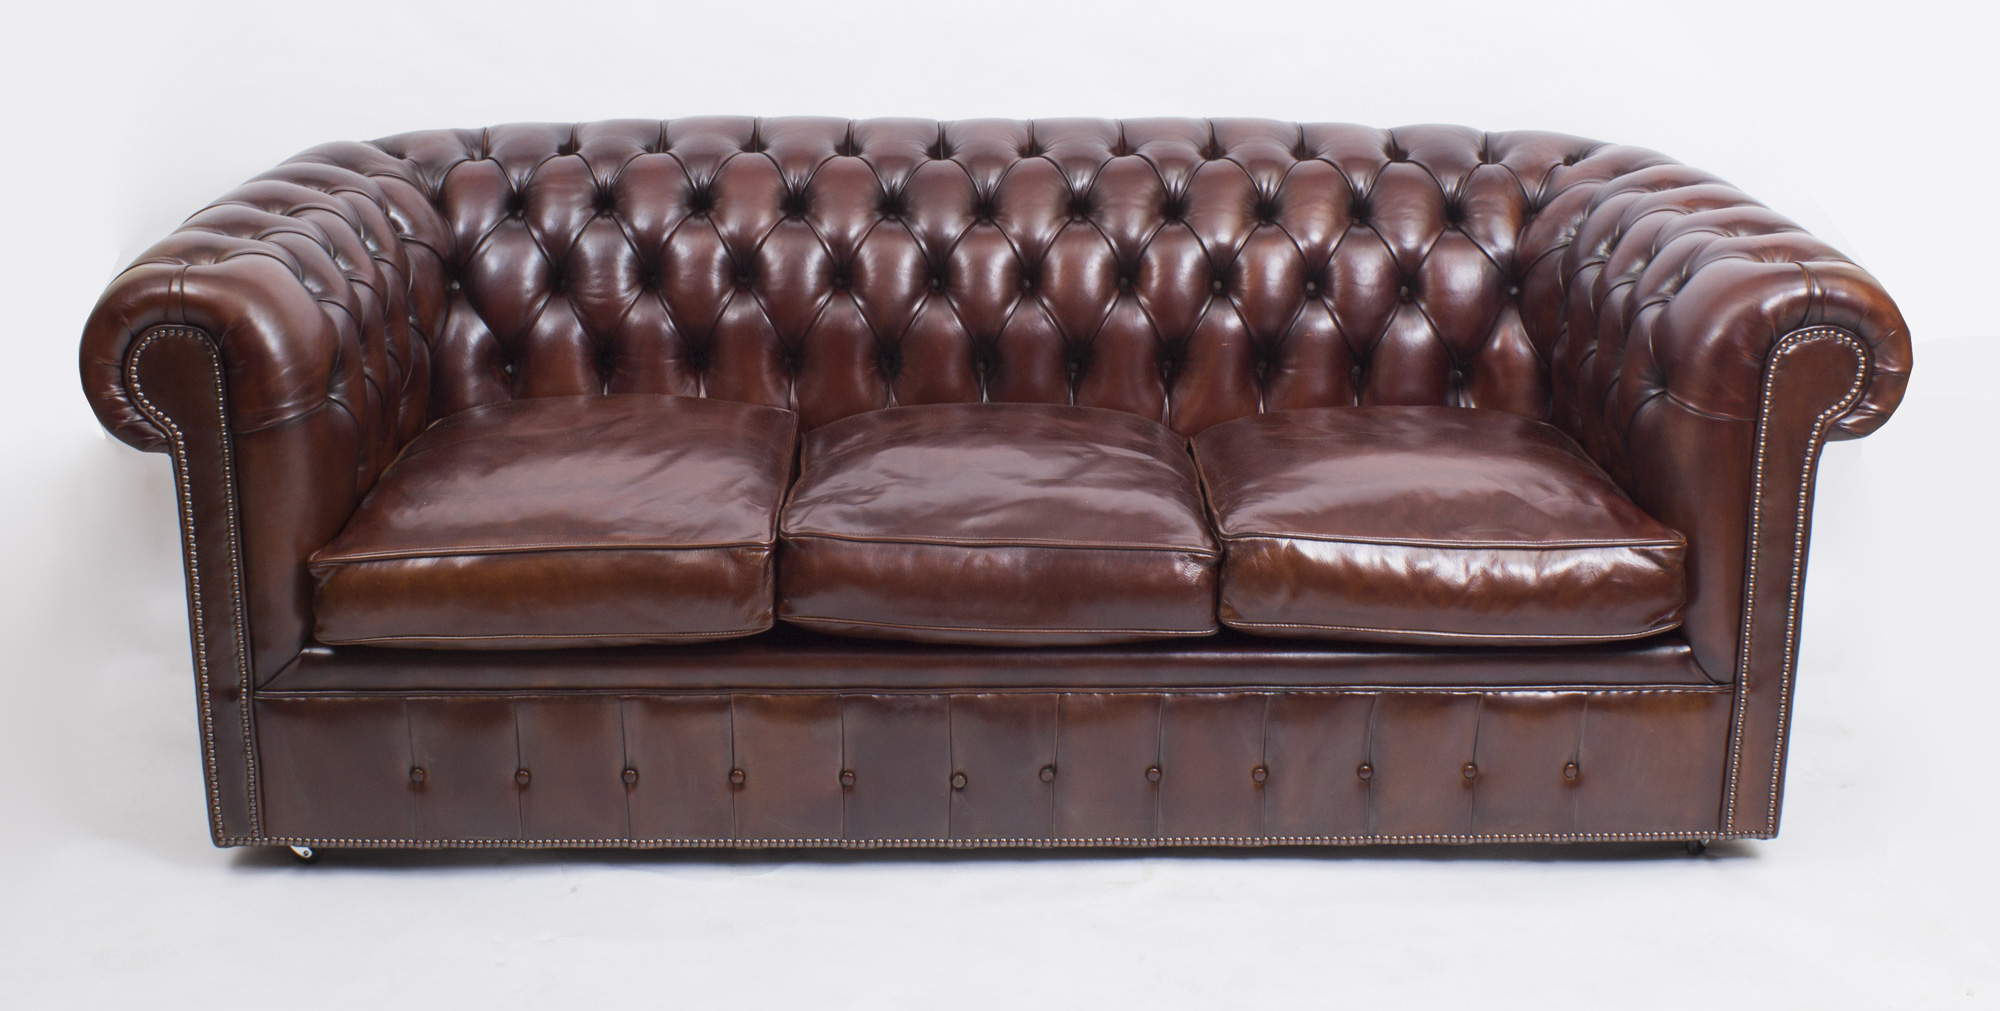 Bespoke english leather chesterfield sofa bed bbo ref for What is bespoke leather